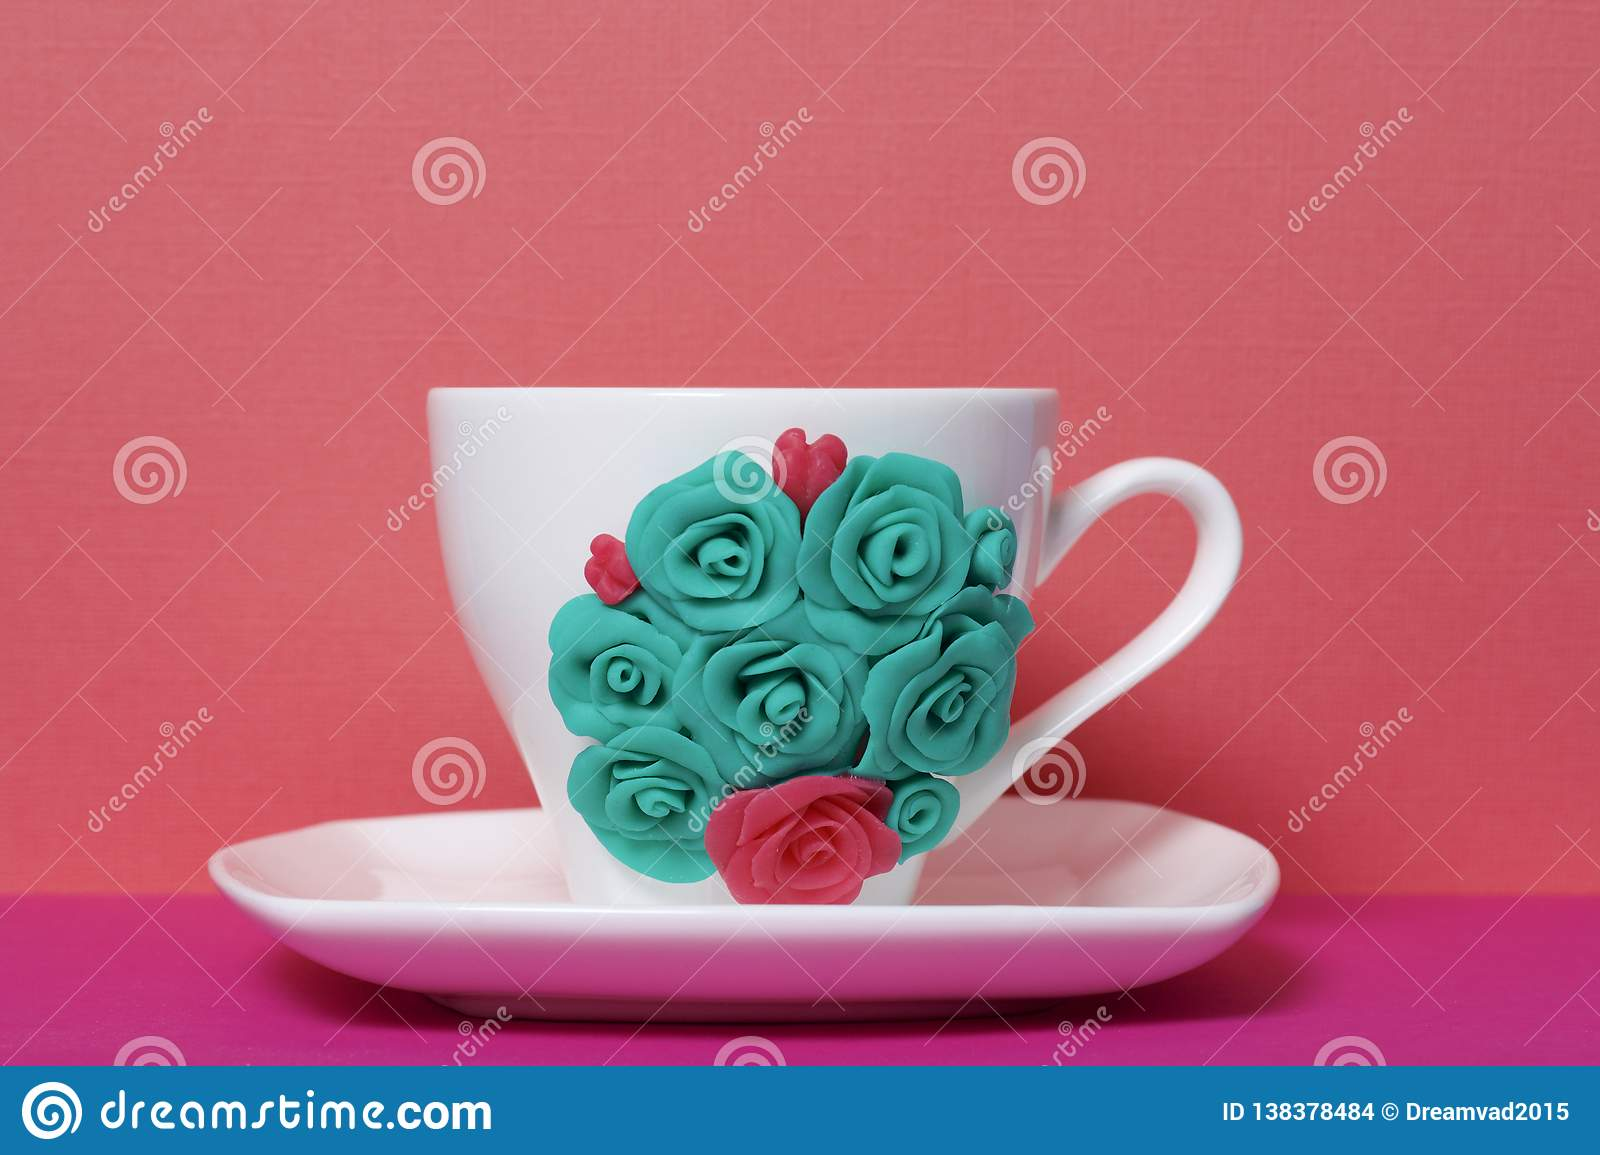 Mug Decorated With Flowers Made Of Polymer Clay Stock Photo Image Of Polymer Stucco 138378484